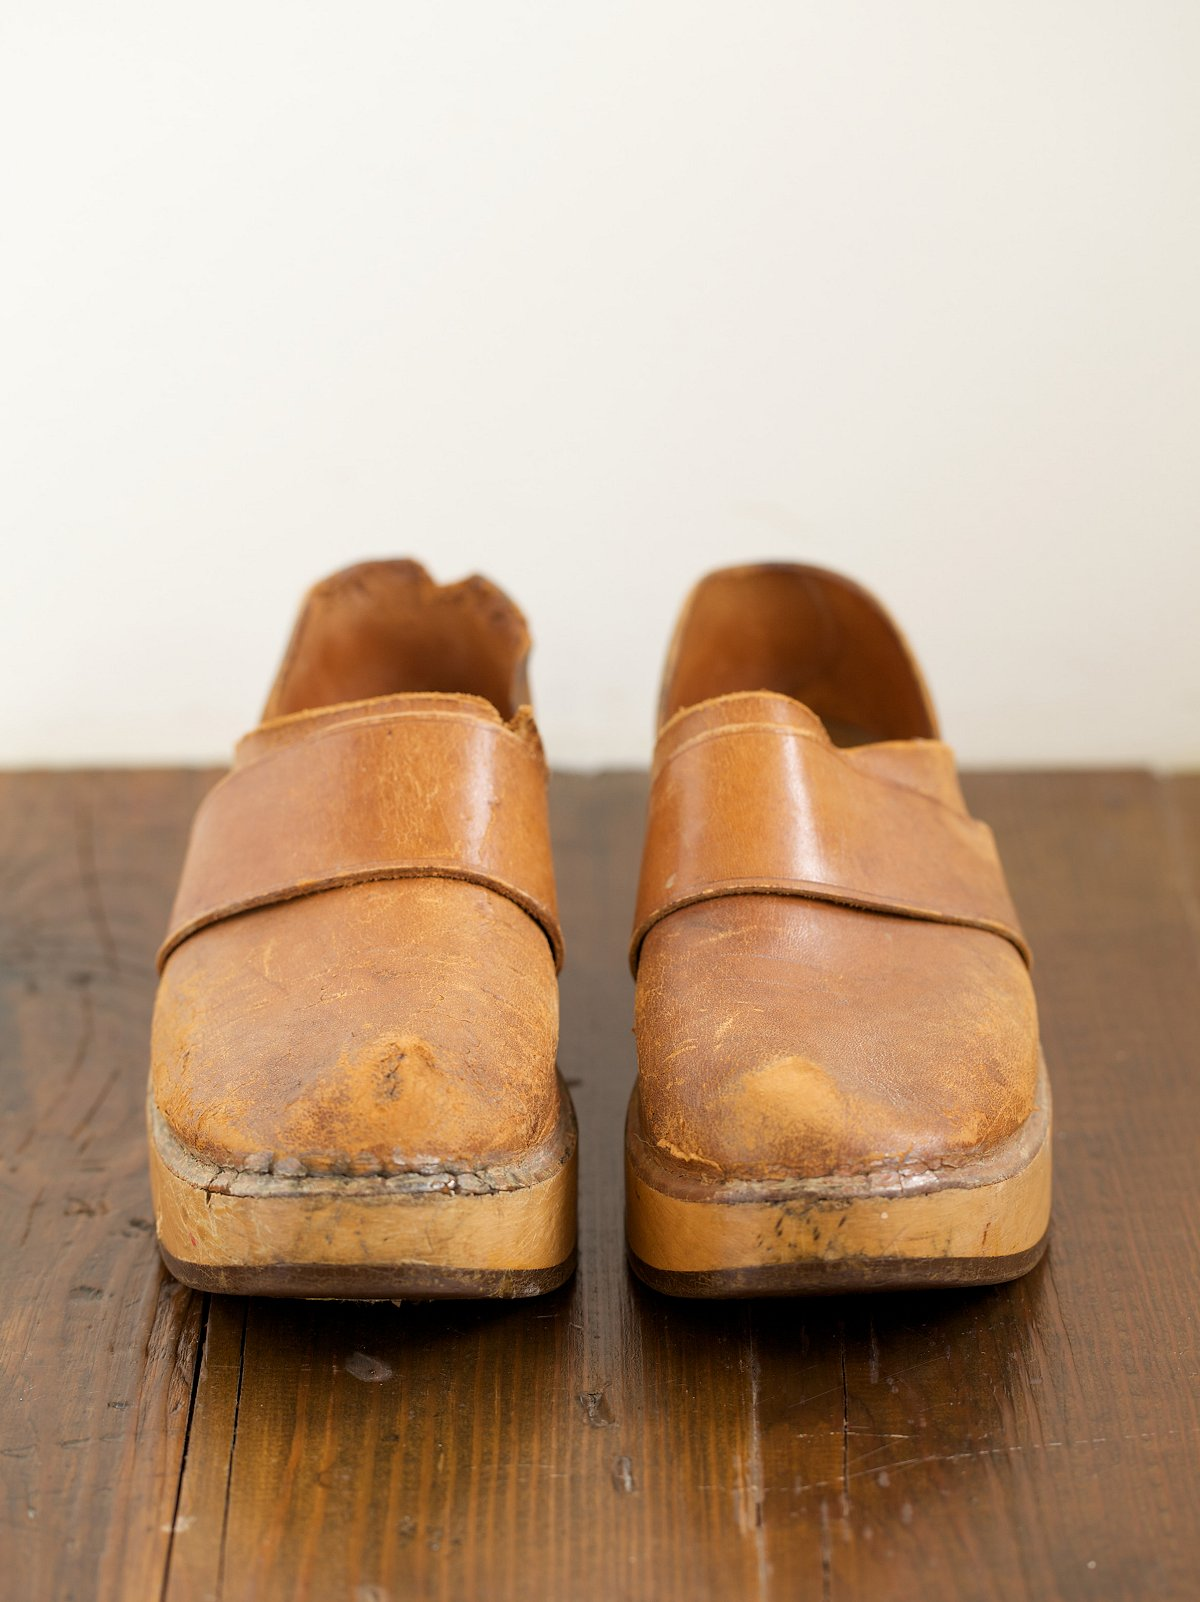 Vintage Leather and Wood Clogs